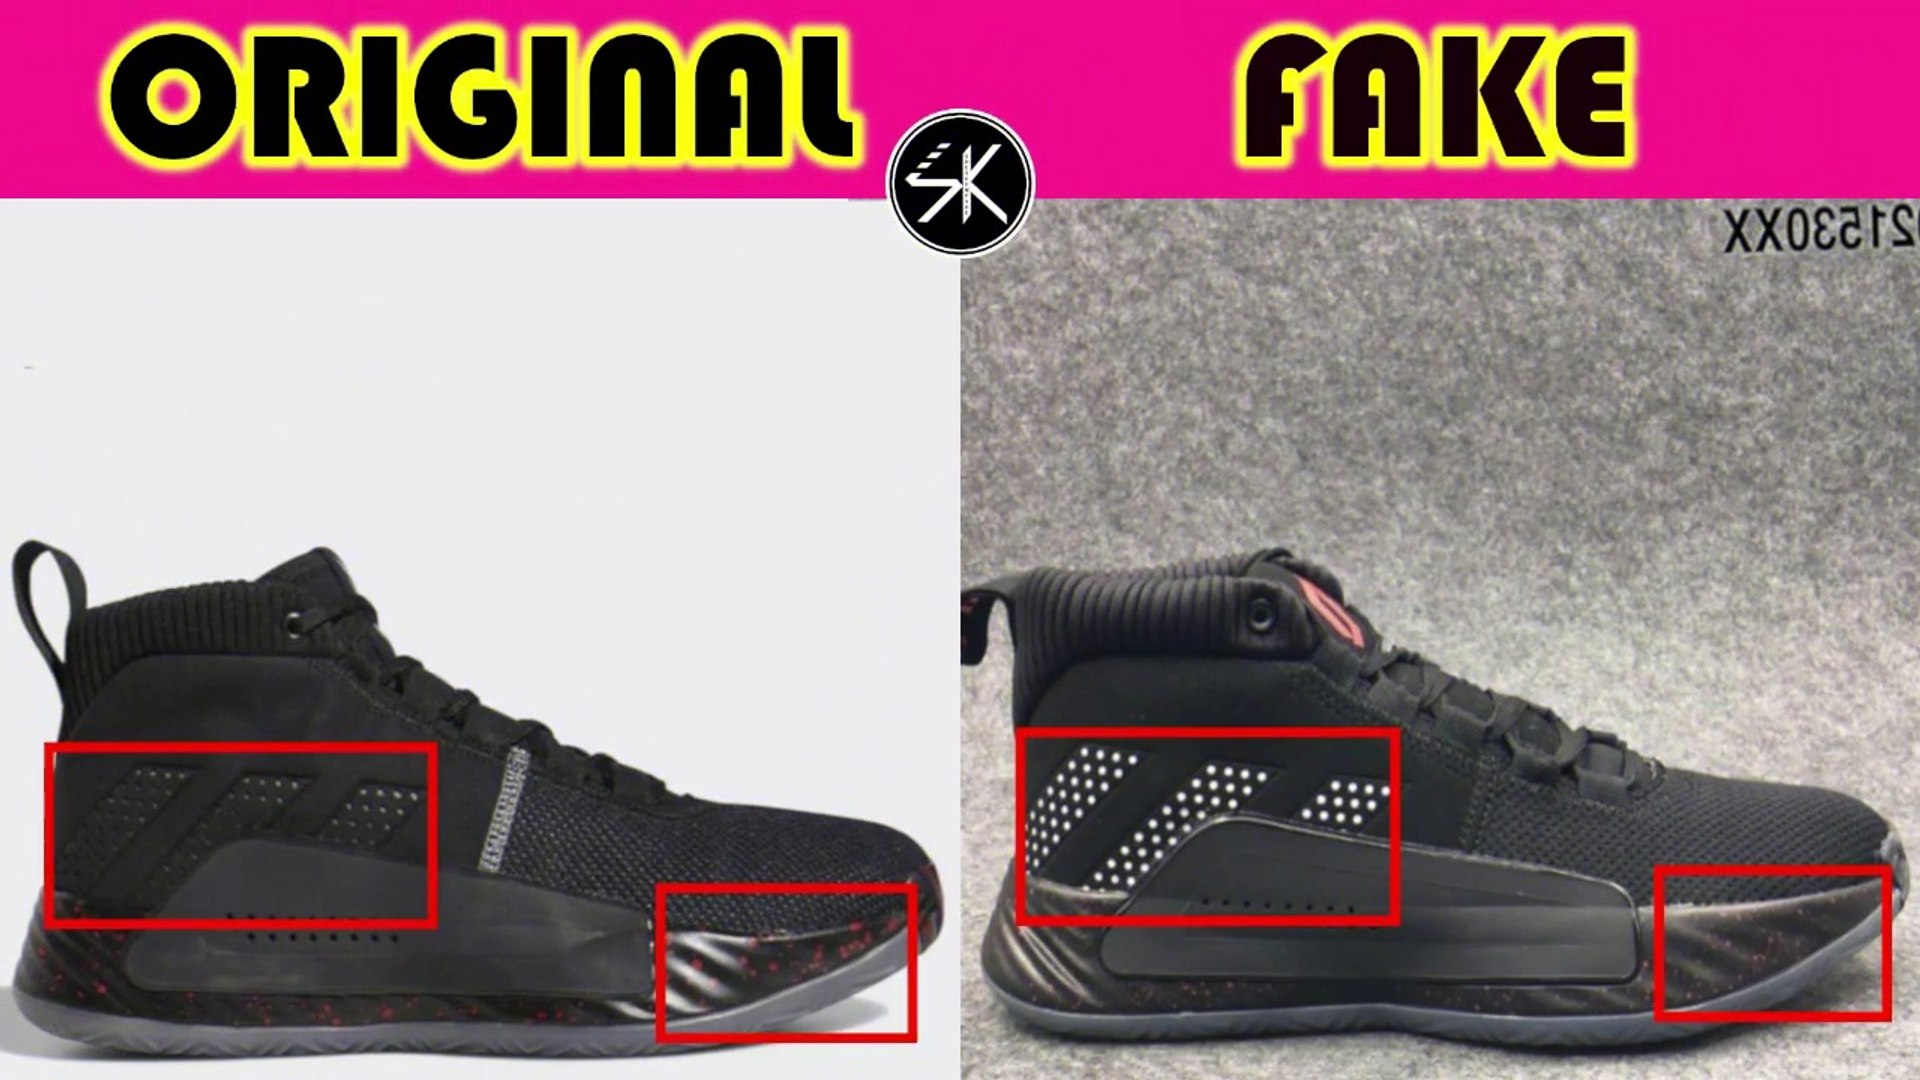 77be3e06309 Adidas Dame 5 People's Champ REAL VS FAKE Detailed Look!!!